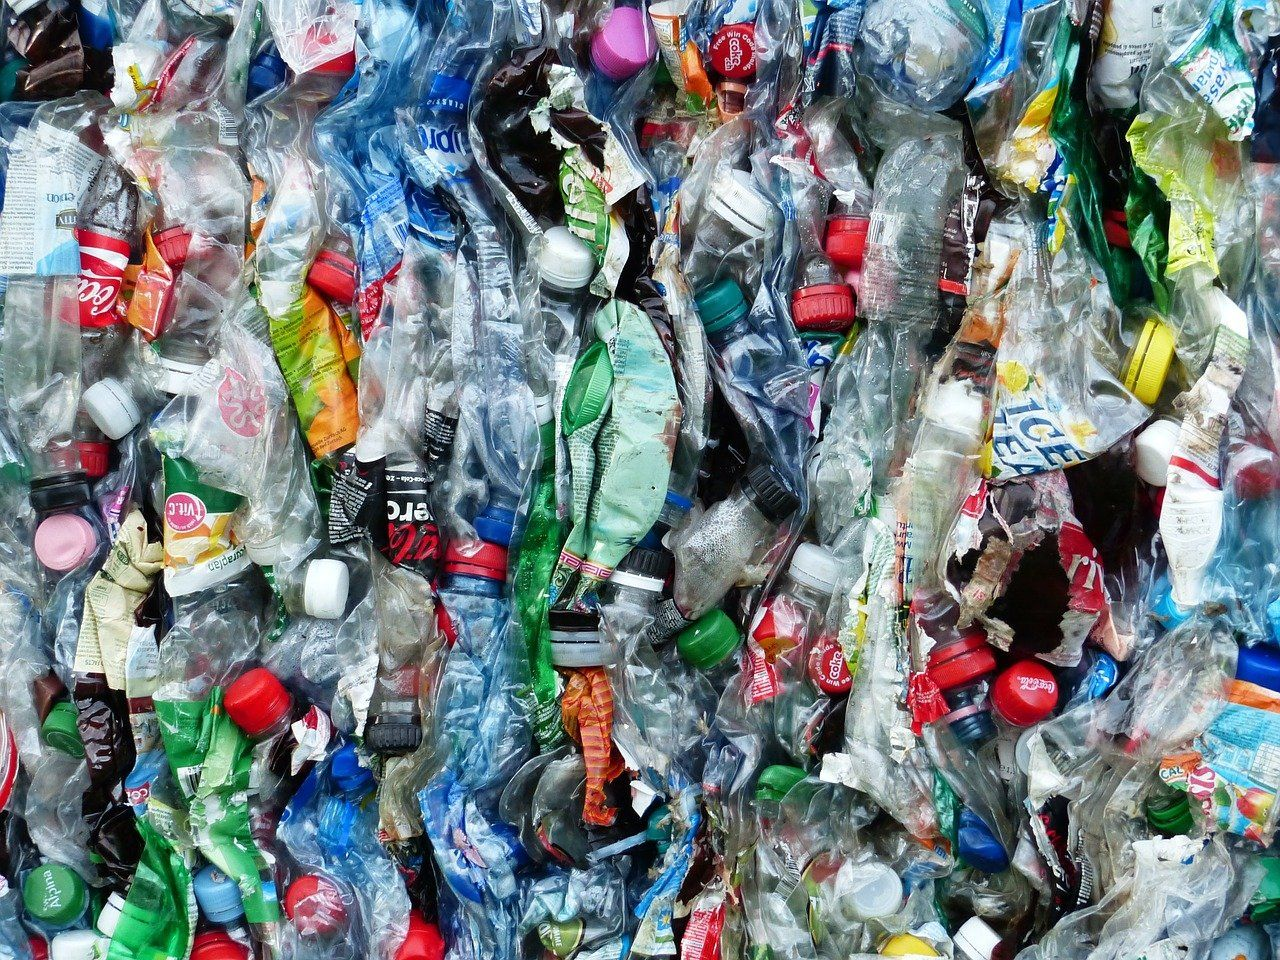 The New Era of Globalisation: Plastic Pollution